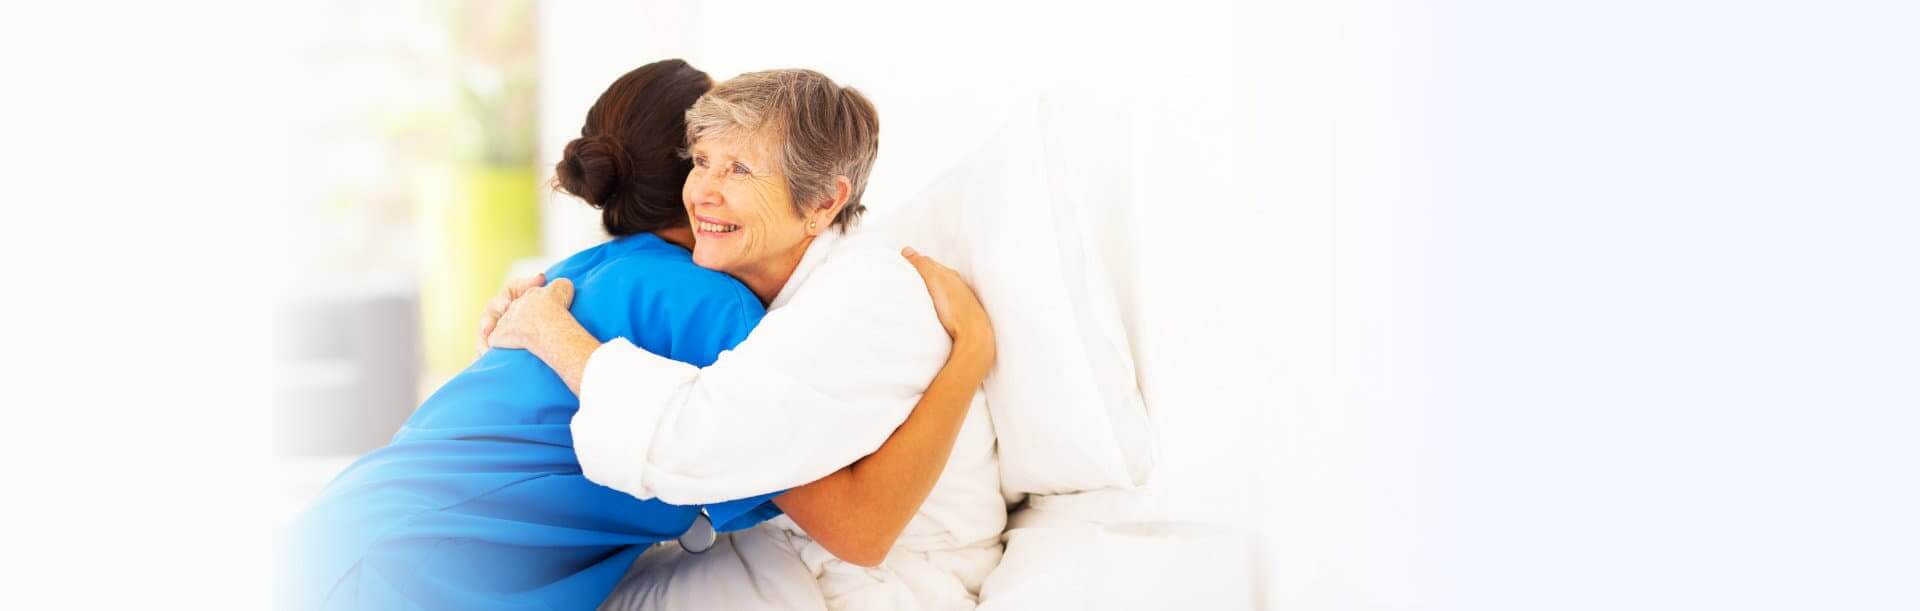 nurse hugging a senior woman on a bed